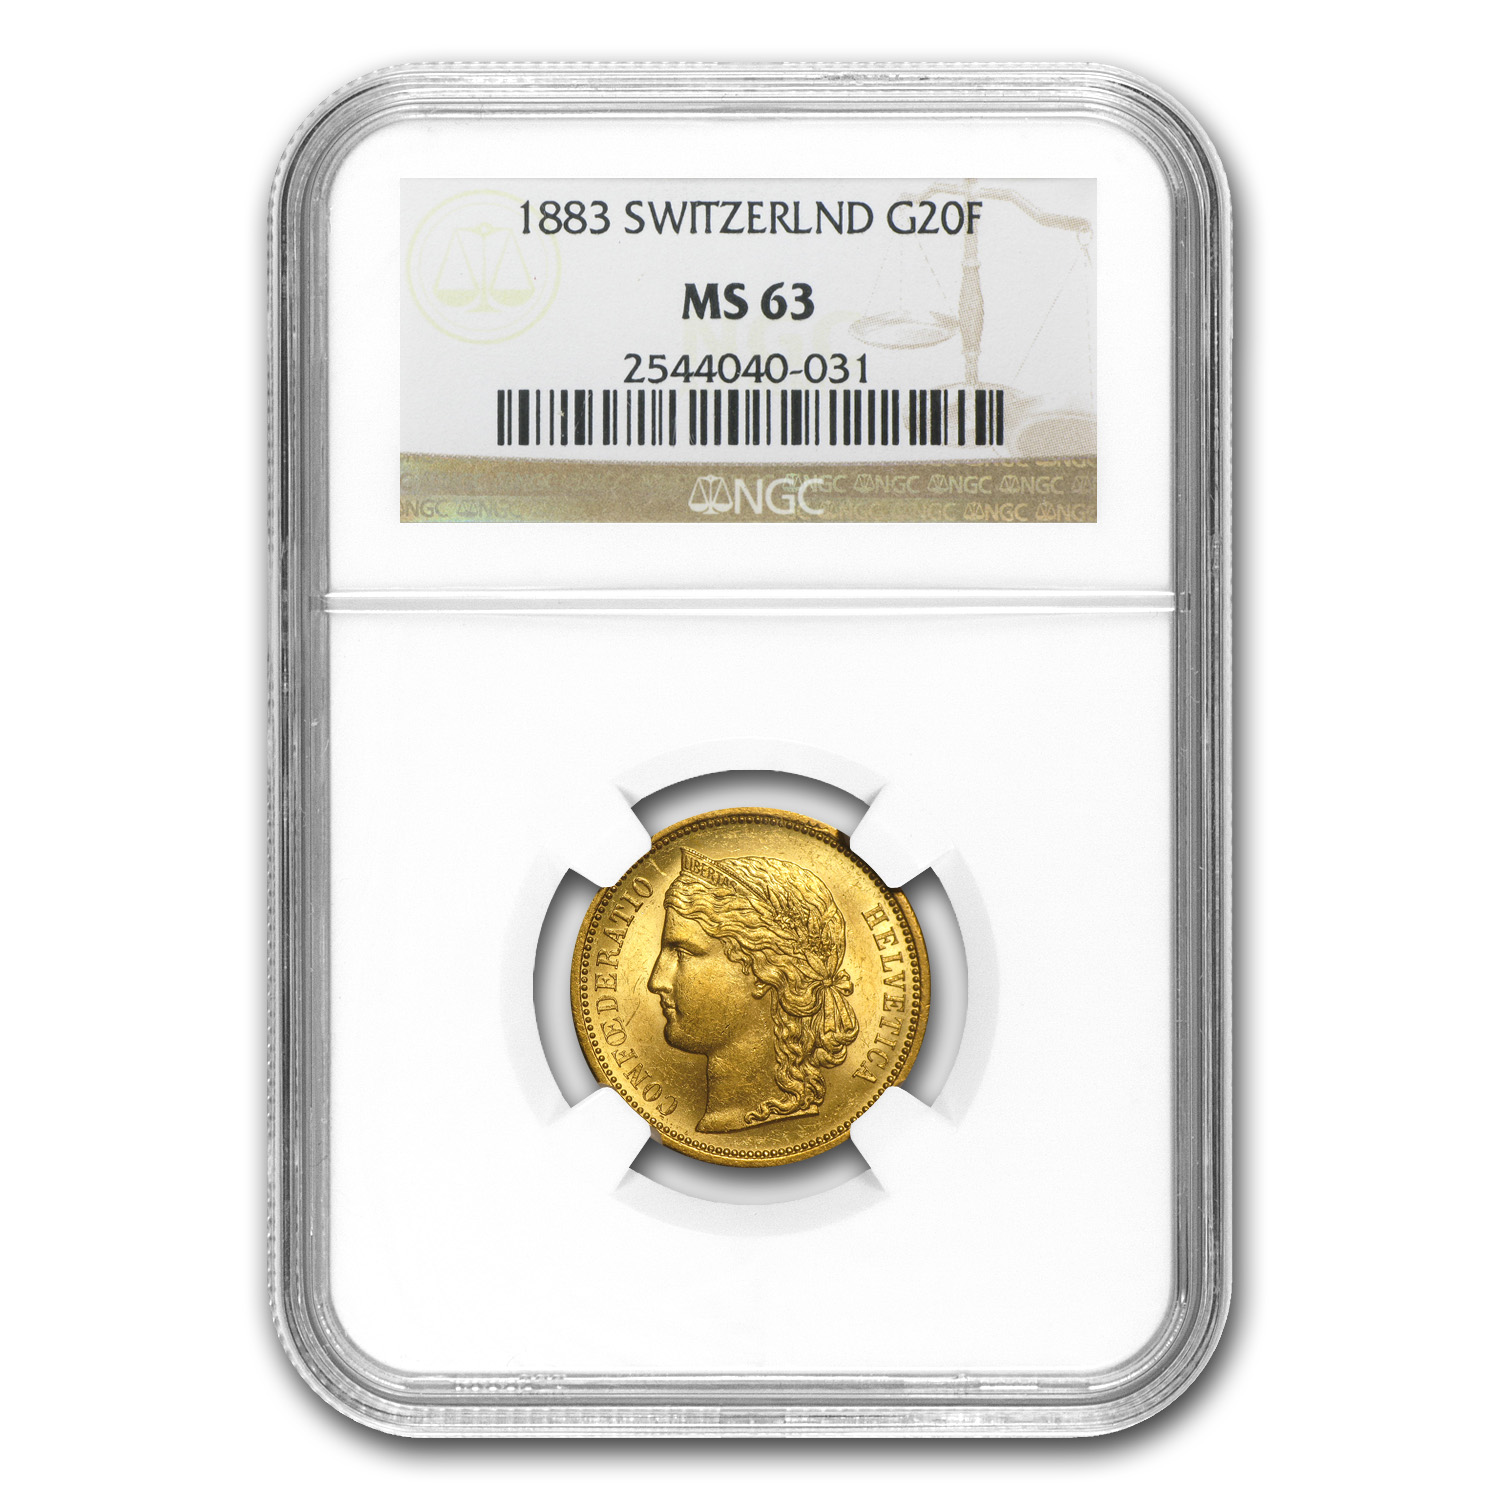 Switzerland (Helvetica) 1883 Gold 20 Francs - MS-63 NGC